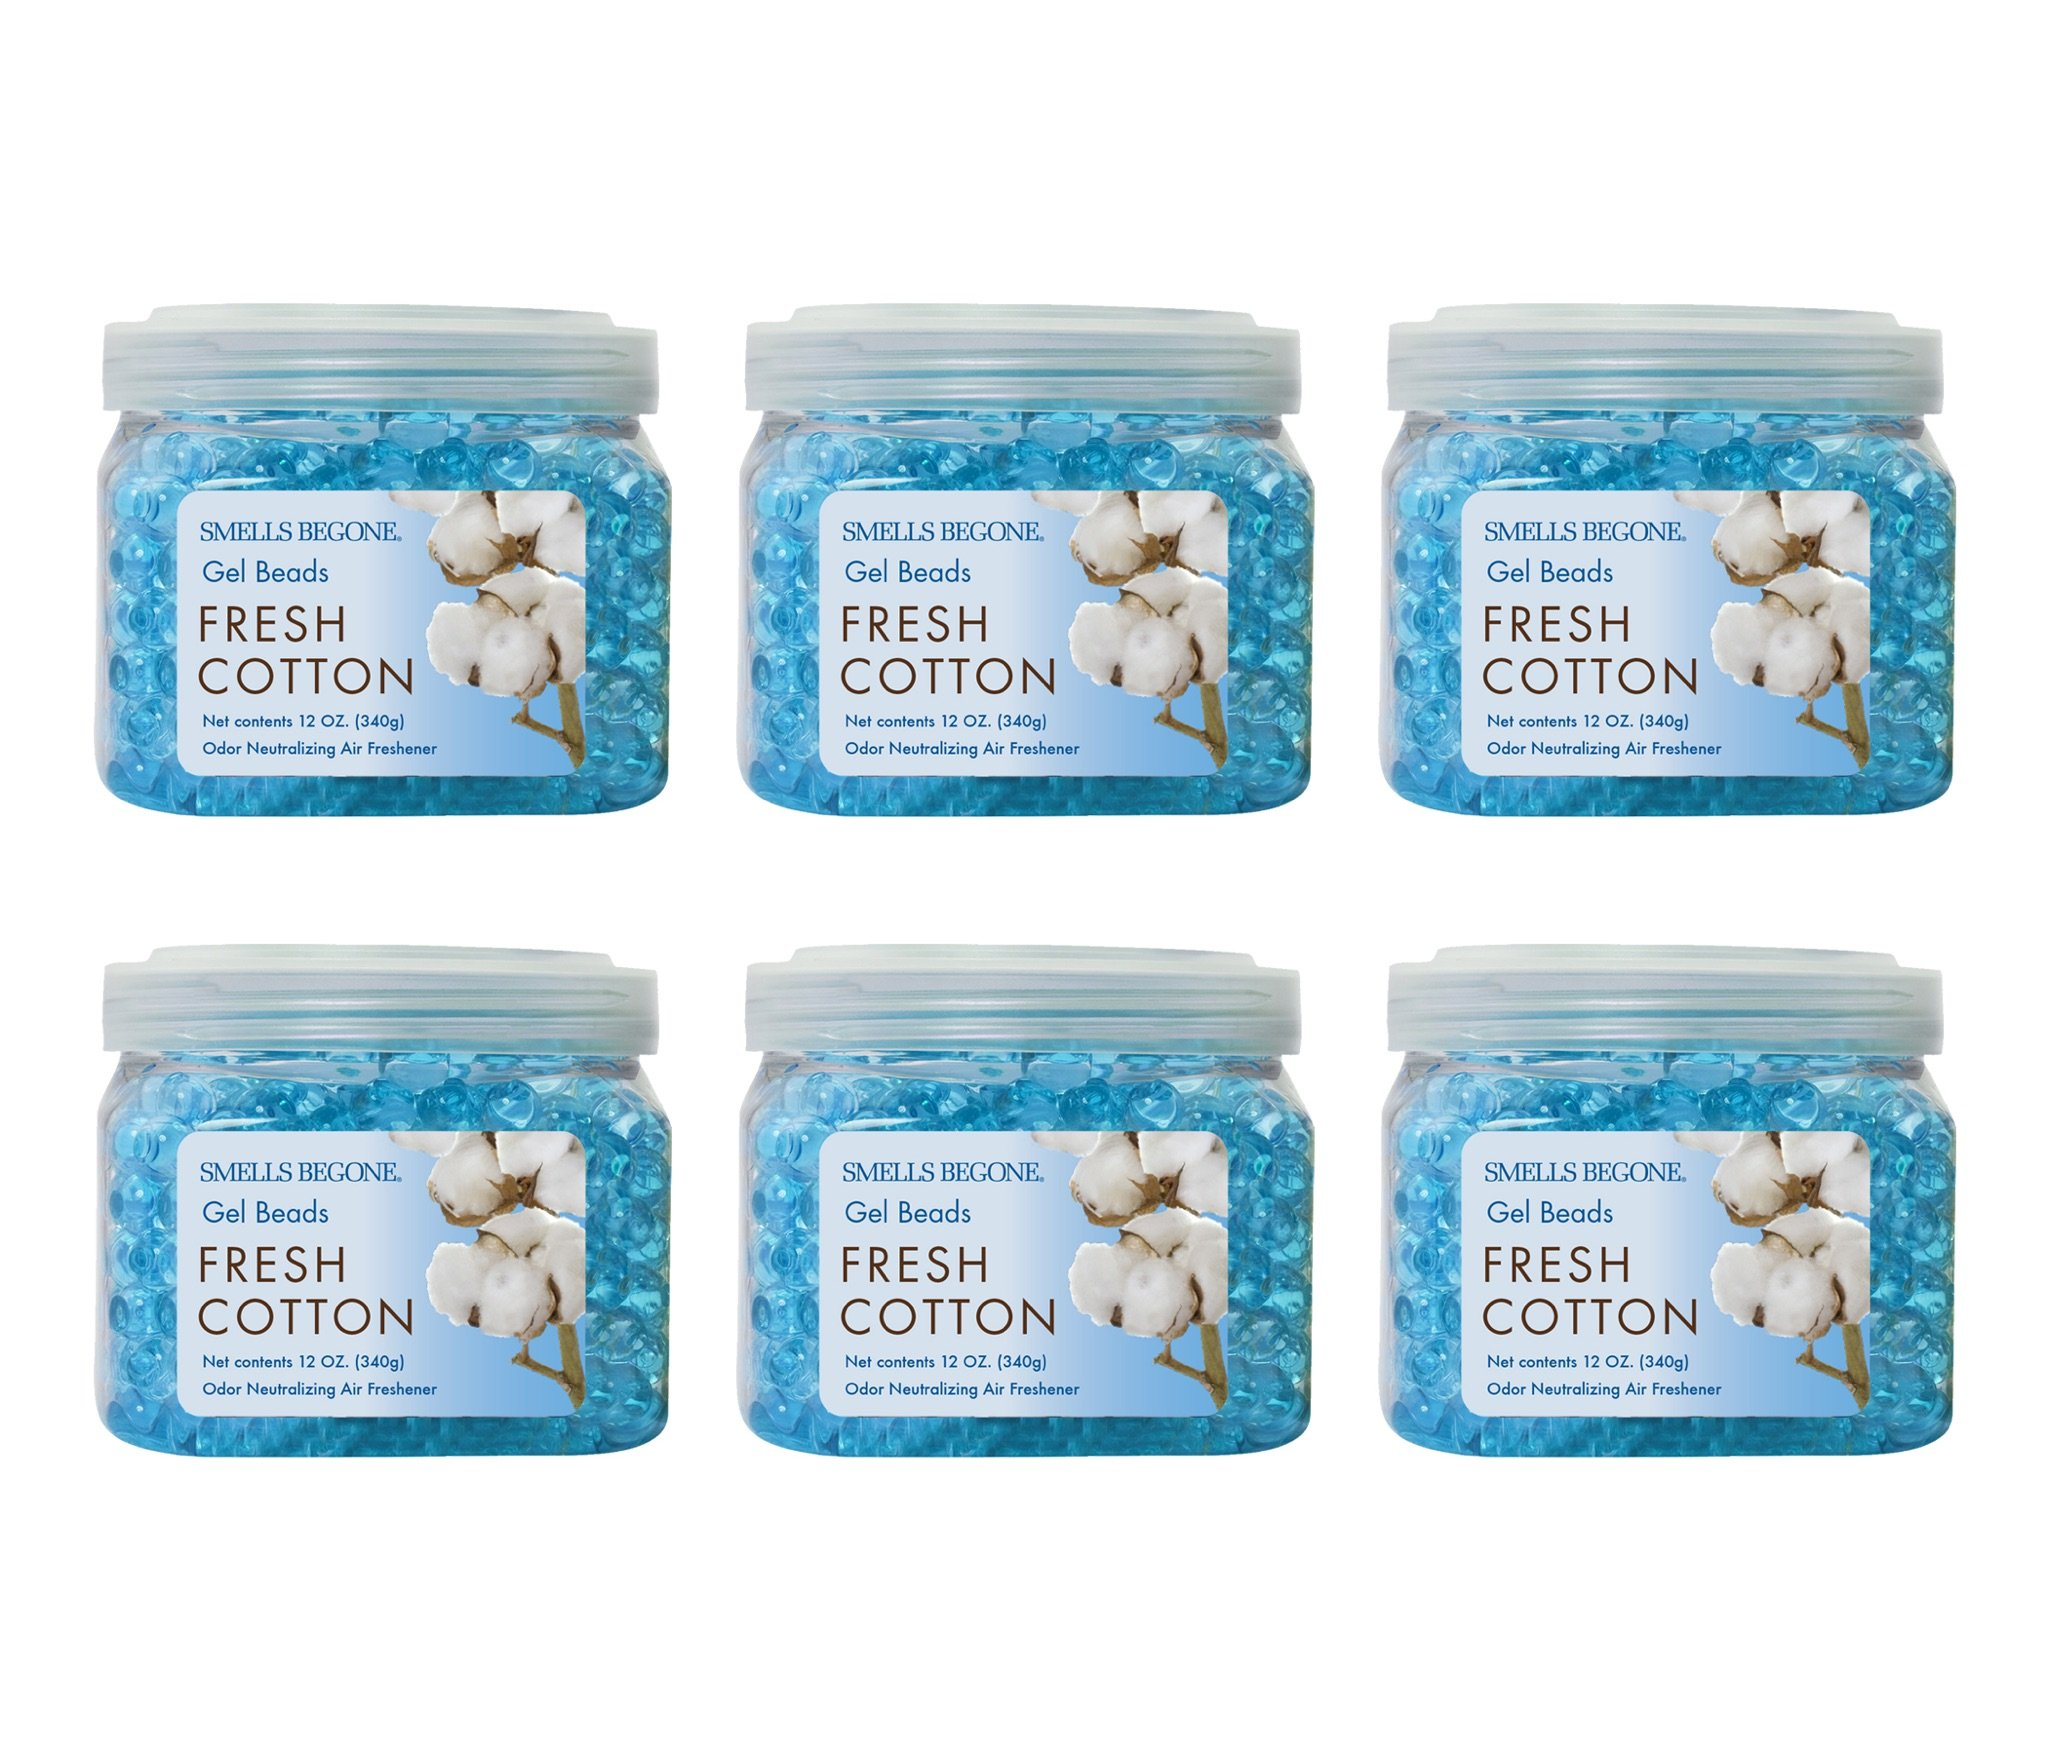 Smells Begone Odor Eliminator Gel Beads - Air Freshener - Eliminates Odors in Bathrooms, Boats, Cars, RVs and Pet Areas - Made with Natural Essential Oils - Fresh Cotton Scent (6 Pack) by Smells Begone (Image #1)